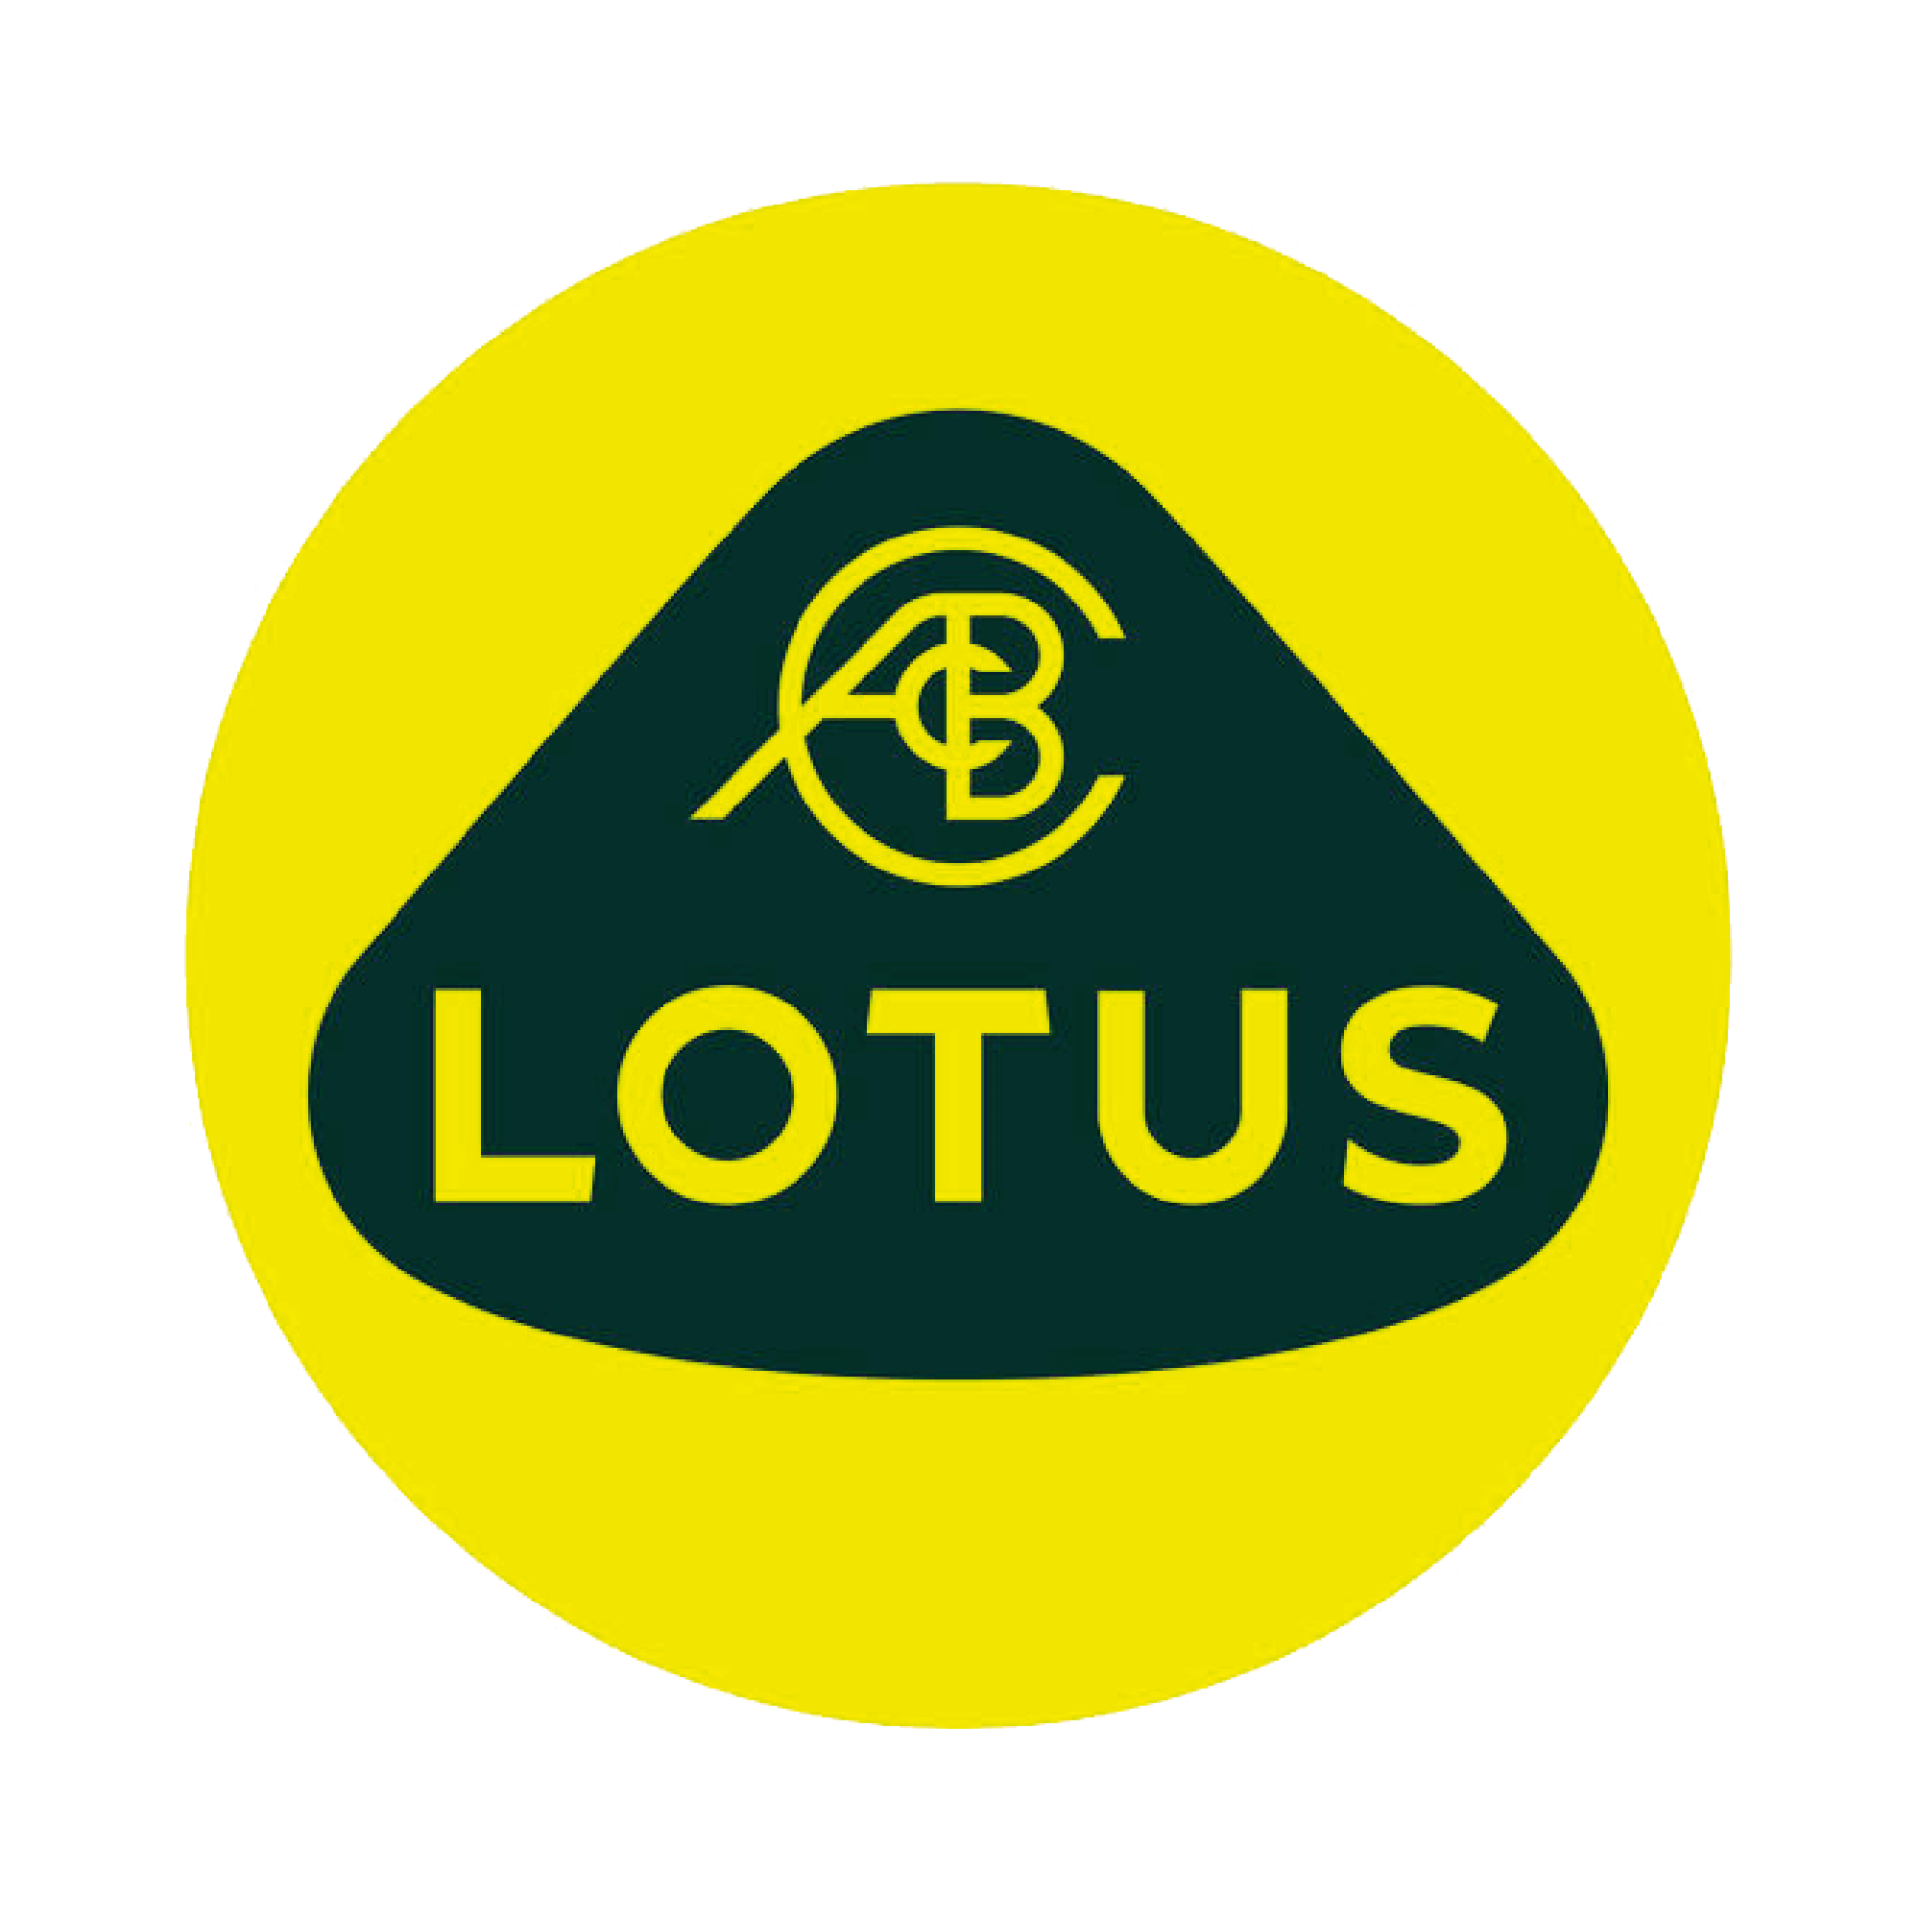 lotus - ted learning client